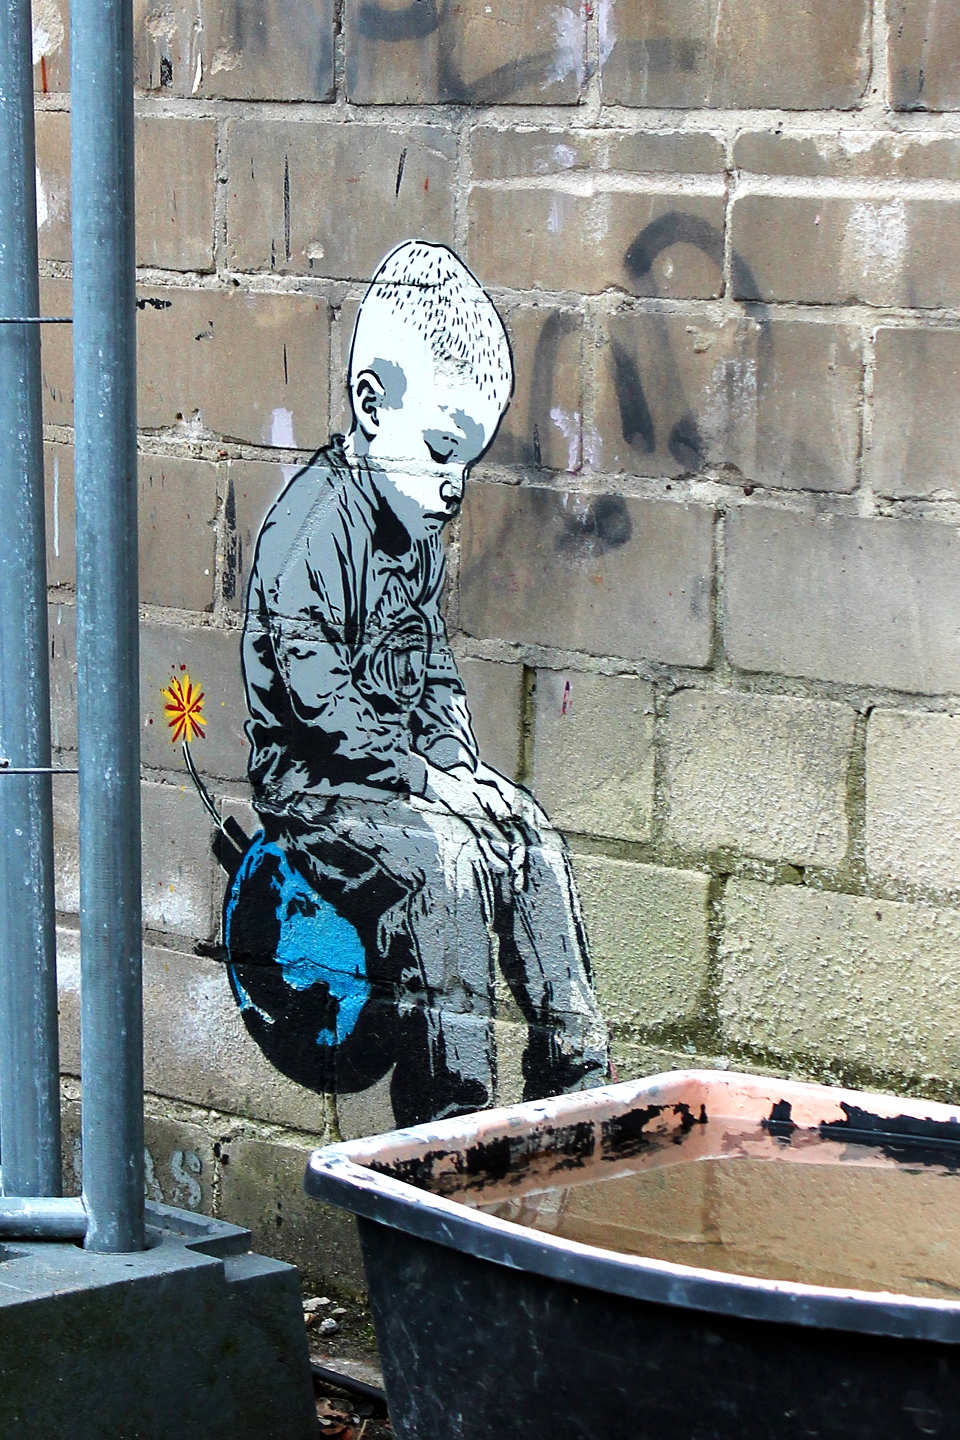 Alias_Boy_Sitting_Bomb_Street_Art_Berlin_Blog_post-1